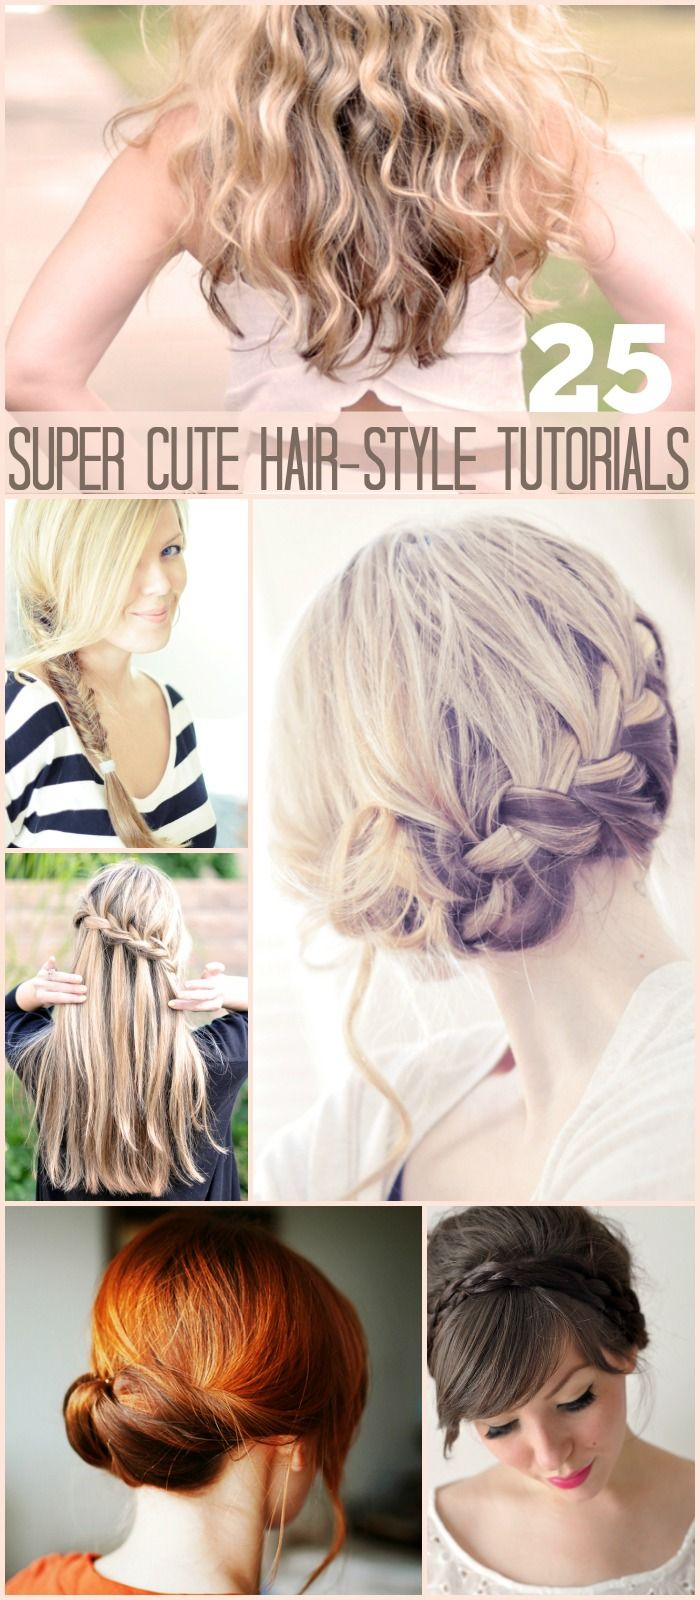 hairstyle tutorials u extras hair style tutorials and hair and